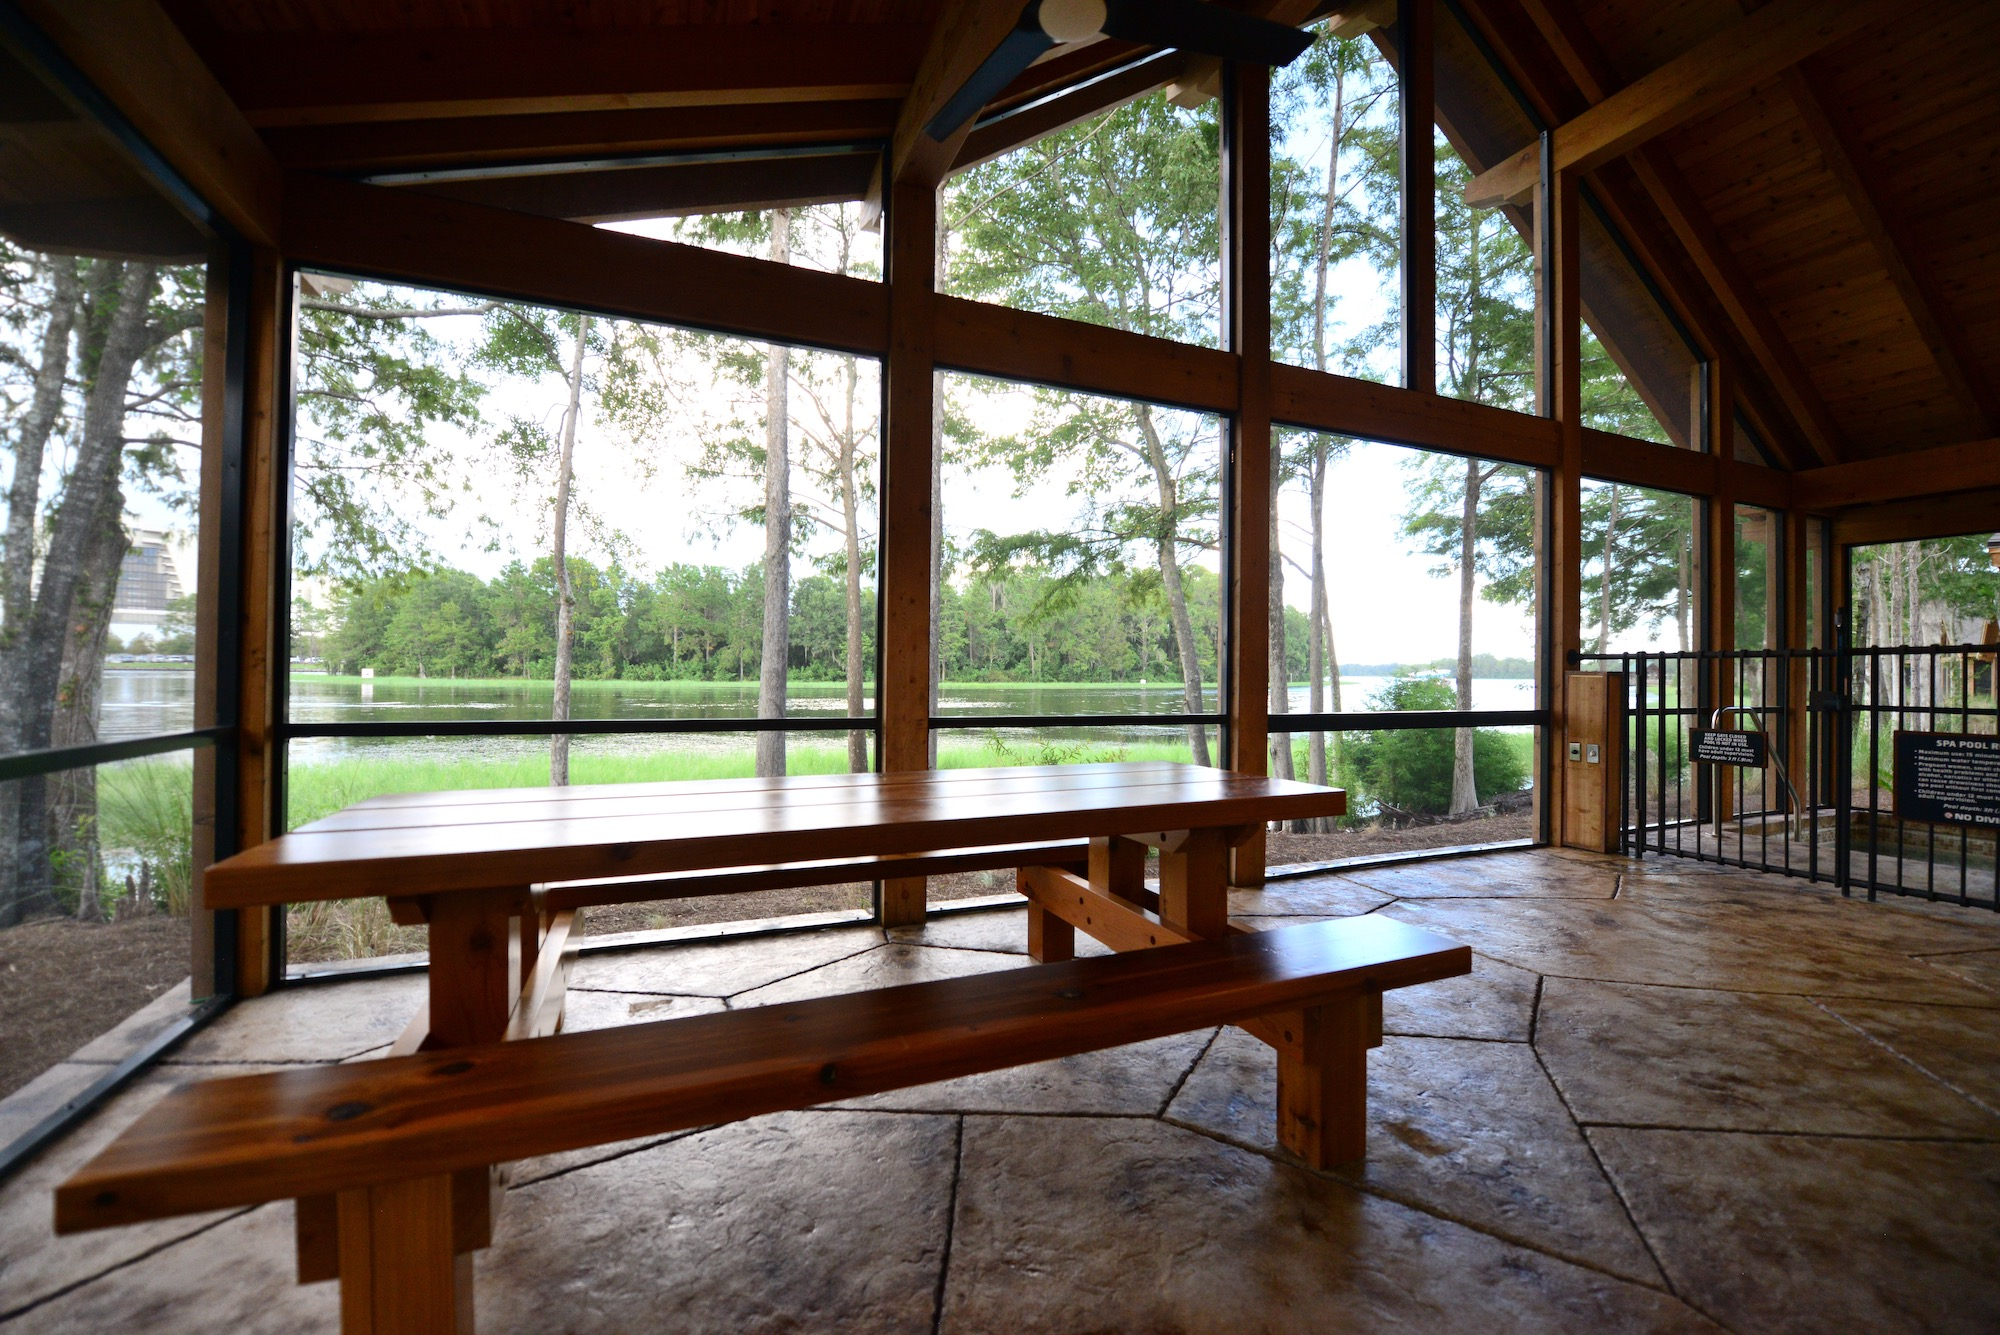 Orl247 cabin patio2